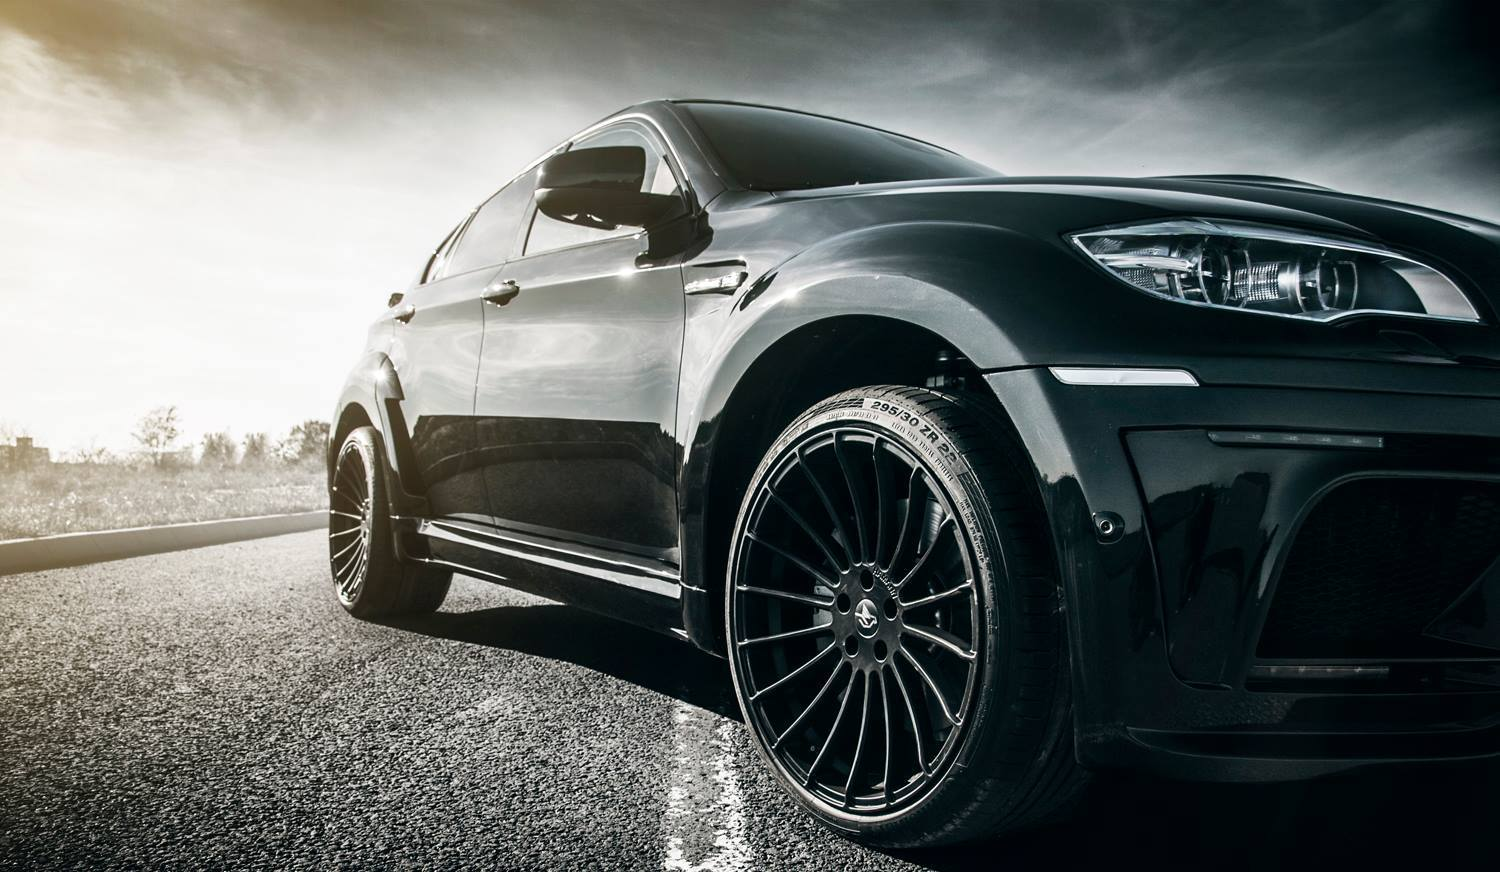 Good Bmw X6 Full Hd Images Bmw X6 Hamann 1347812 Hd Wallpaper Backgrounds Download